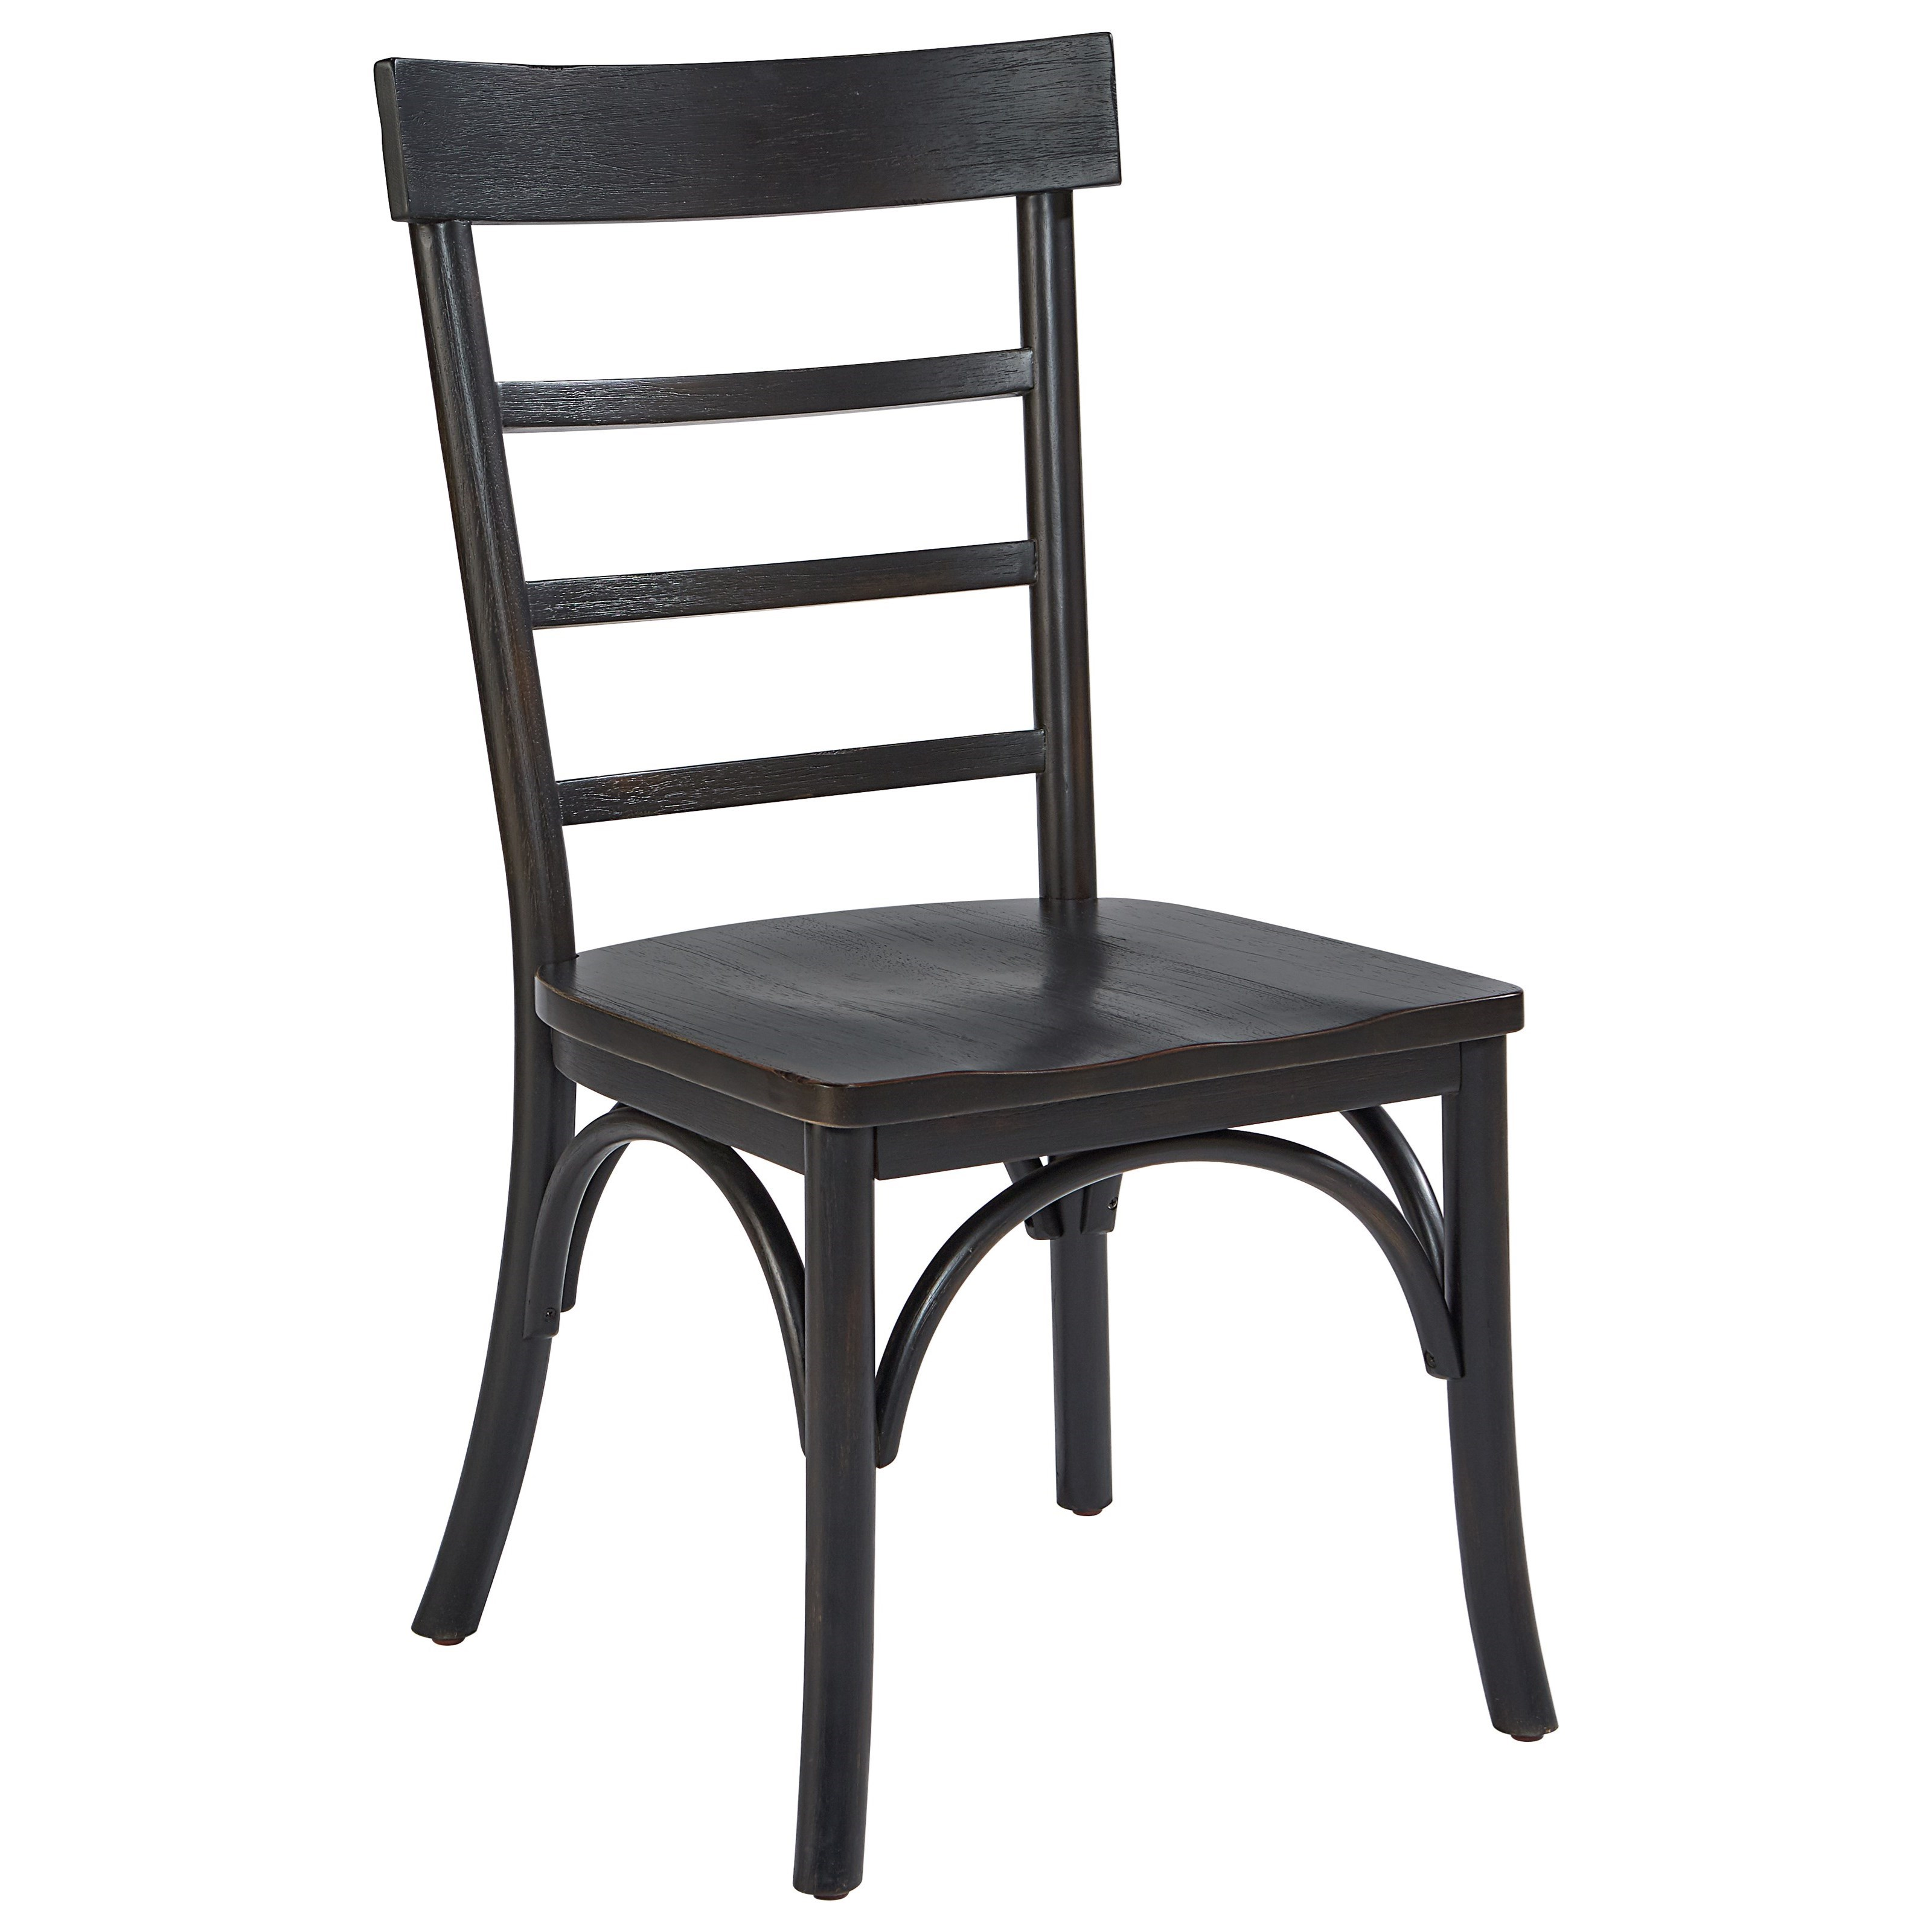 Magnolia Home by Joanna Gaines Primitive Harper Dining Side Chair